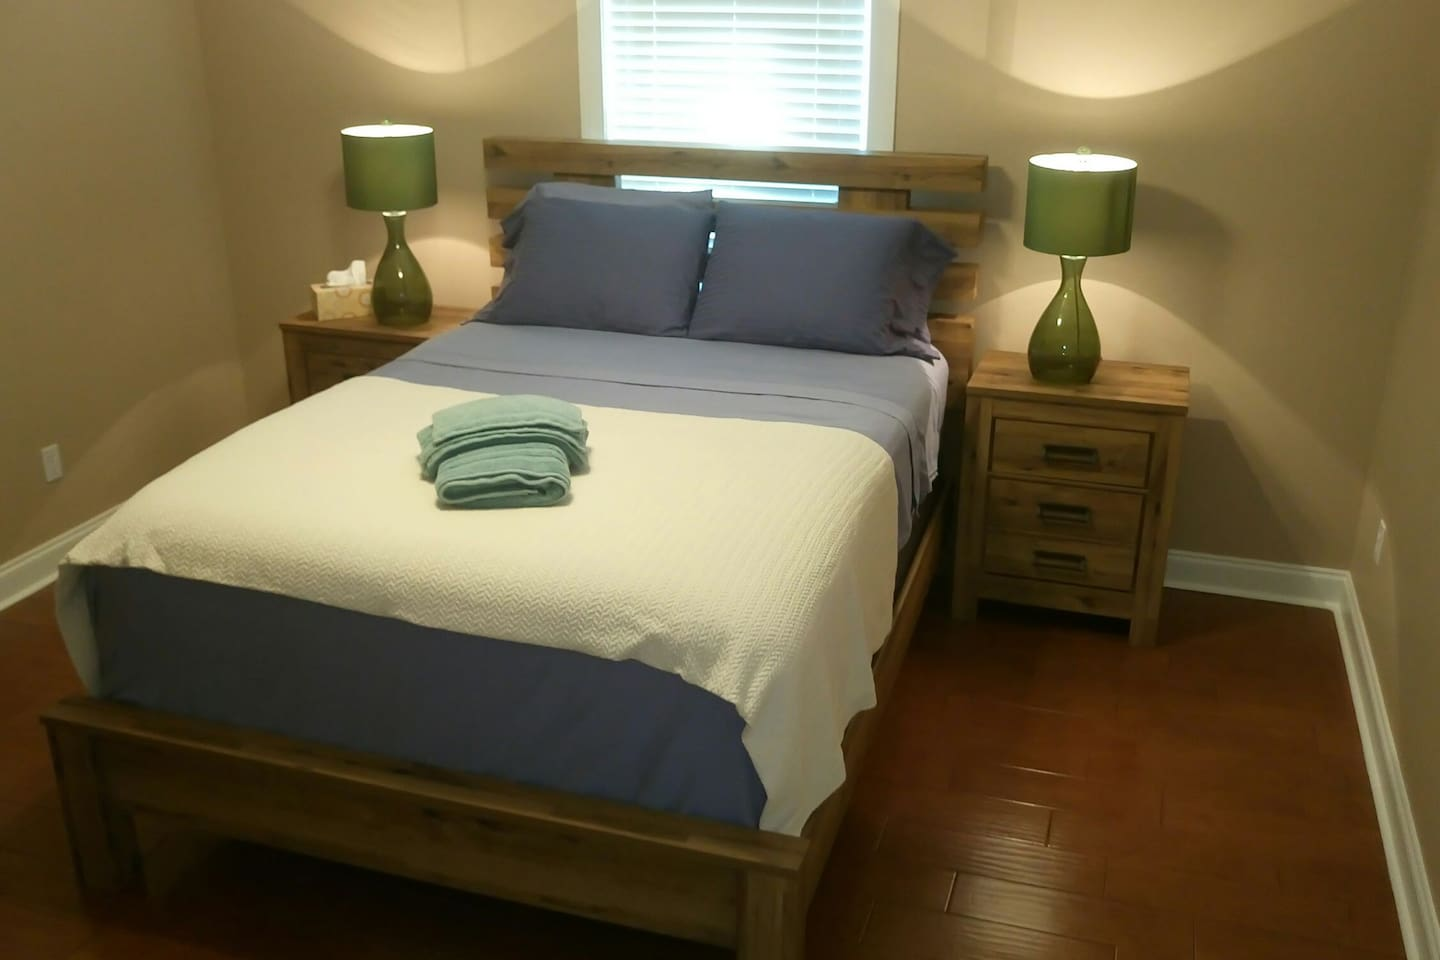 Master Bedroom - the nightstands have a USB connector in the back to charge mobile phones.